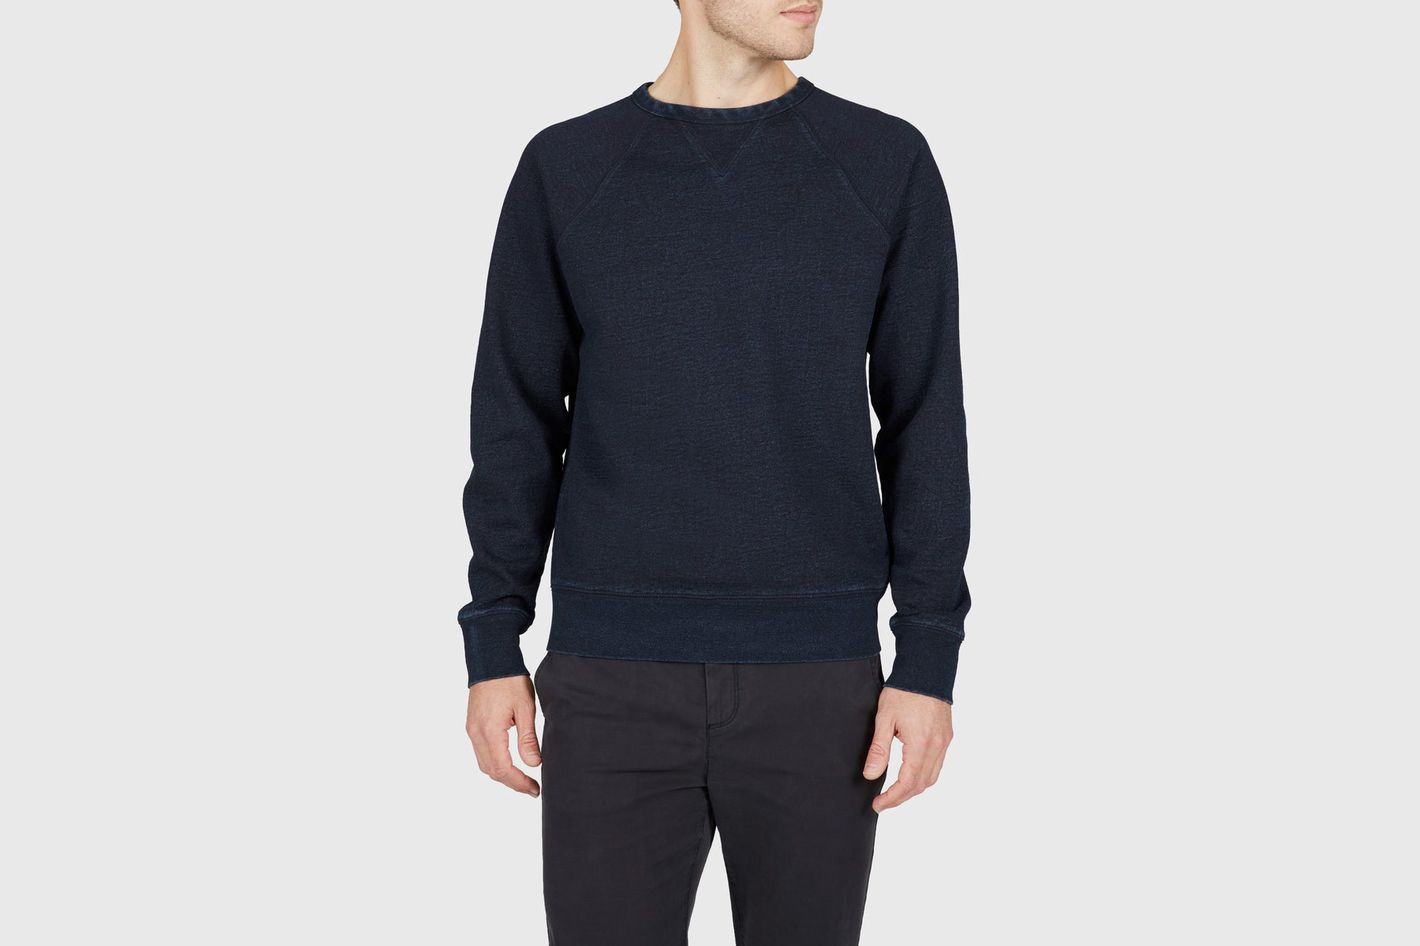 Everlane Indigo French Terry Crew